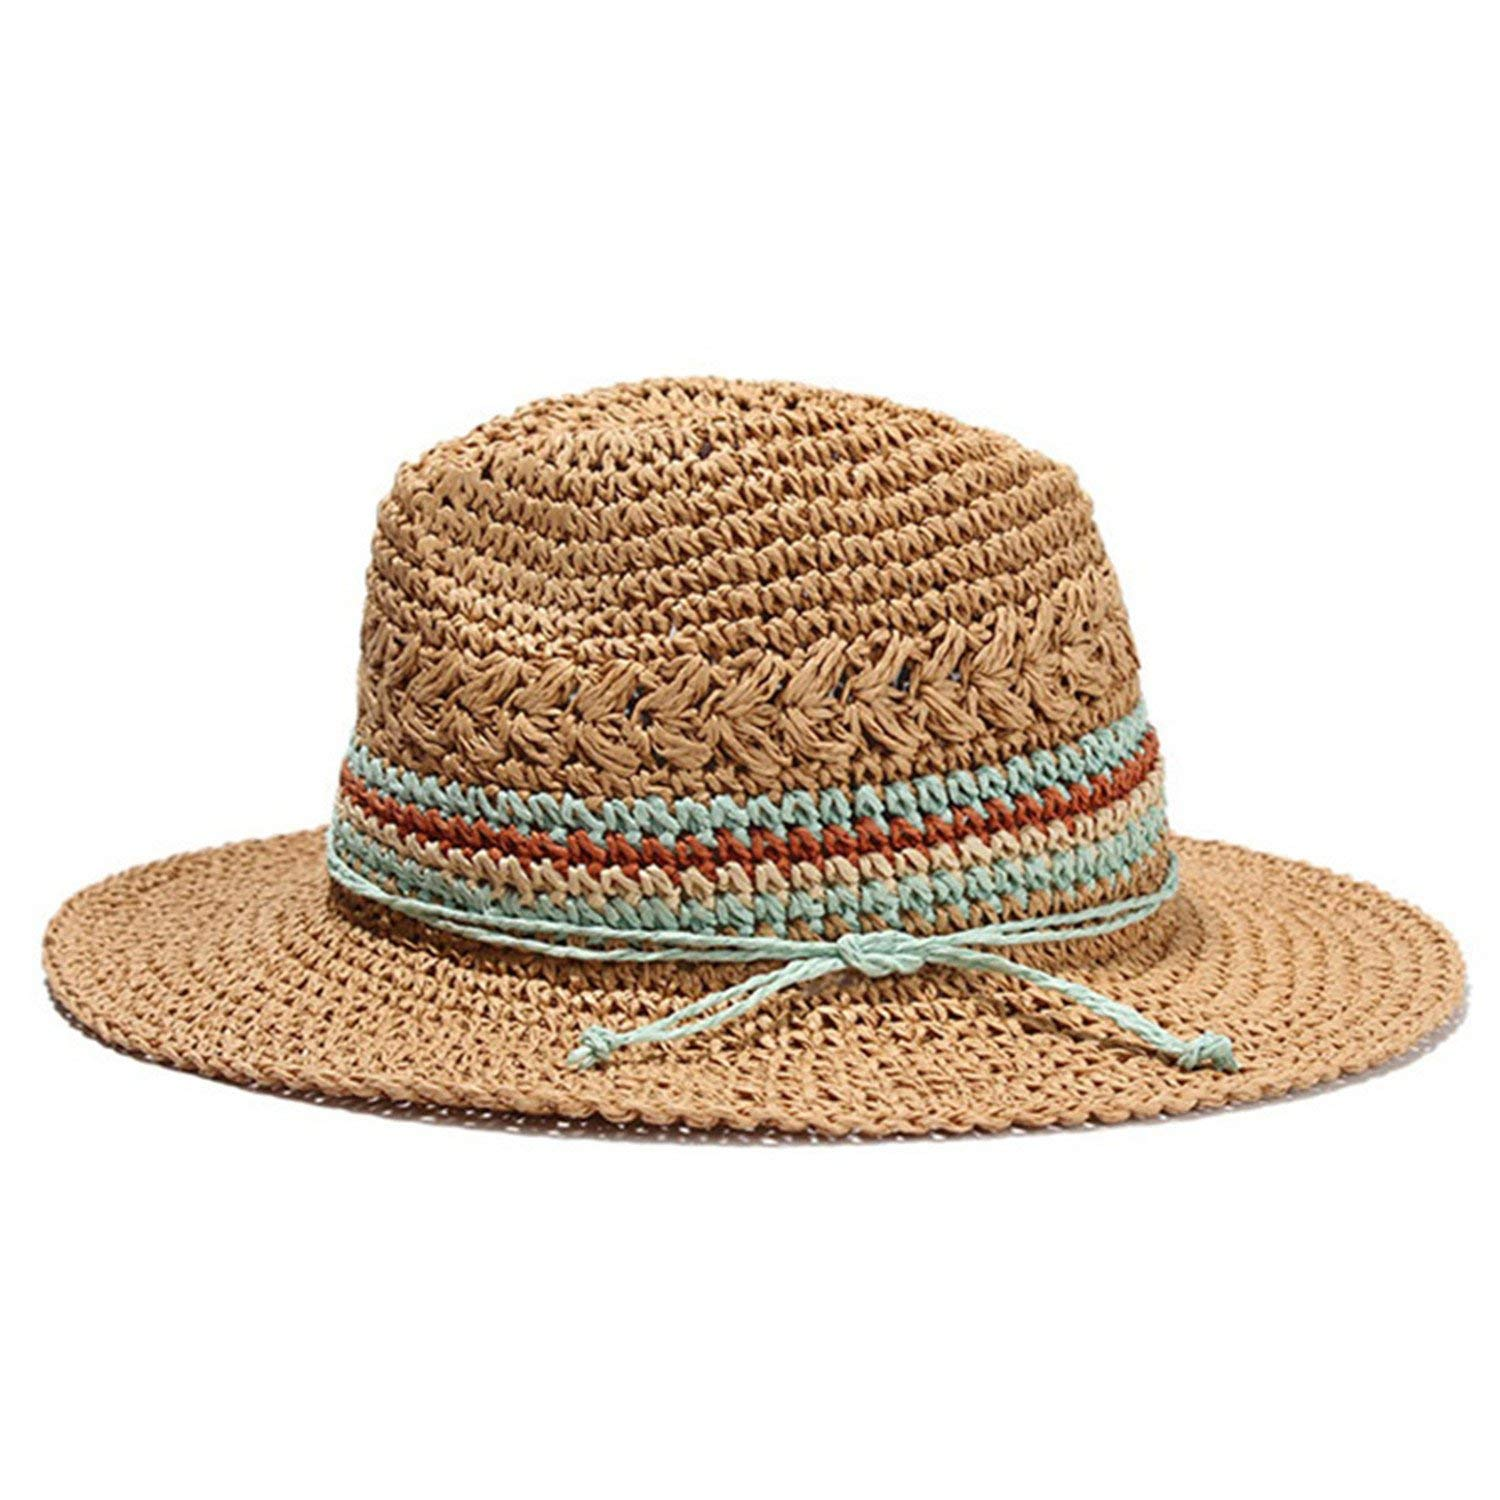 e13e352b51fd6 Get Quotations · Leo Lamb Handmade Knitted Patchwork Straw Hat for Women  Summer Hats Elegant Ladies Wide Brim Floppy